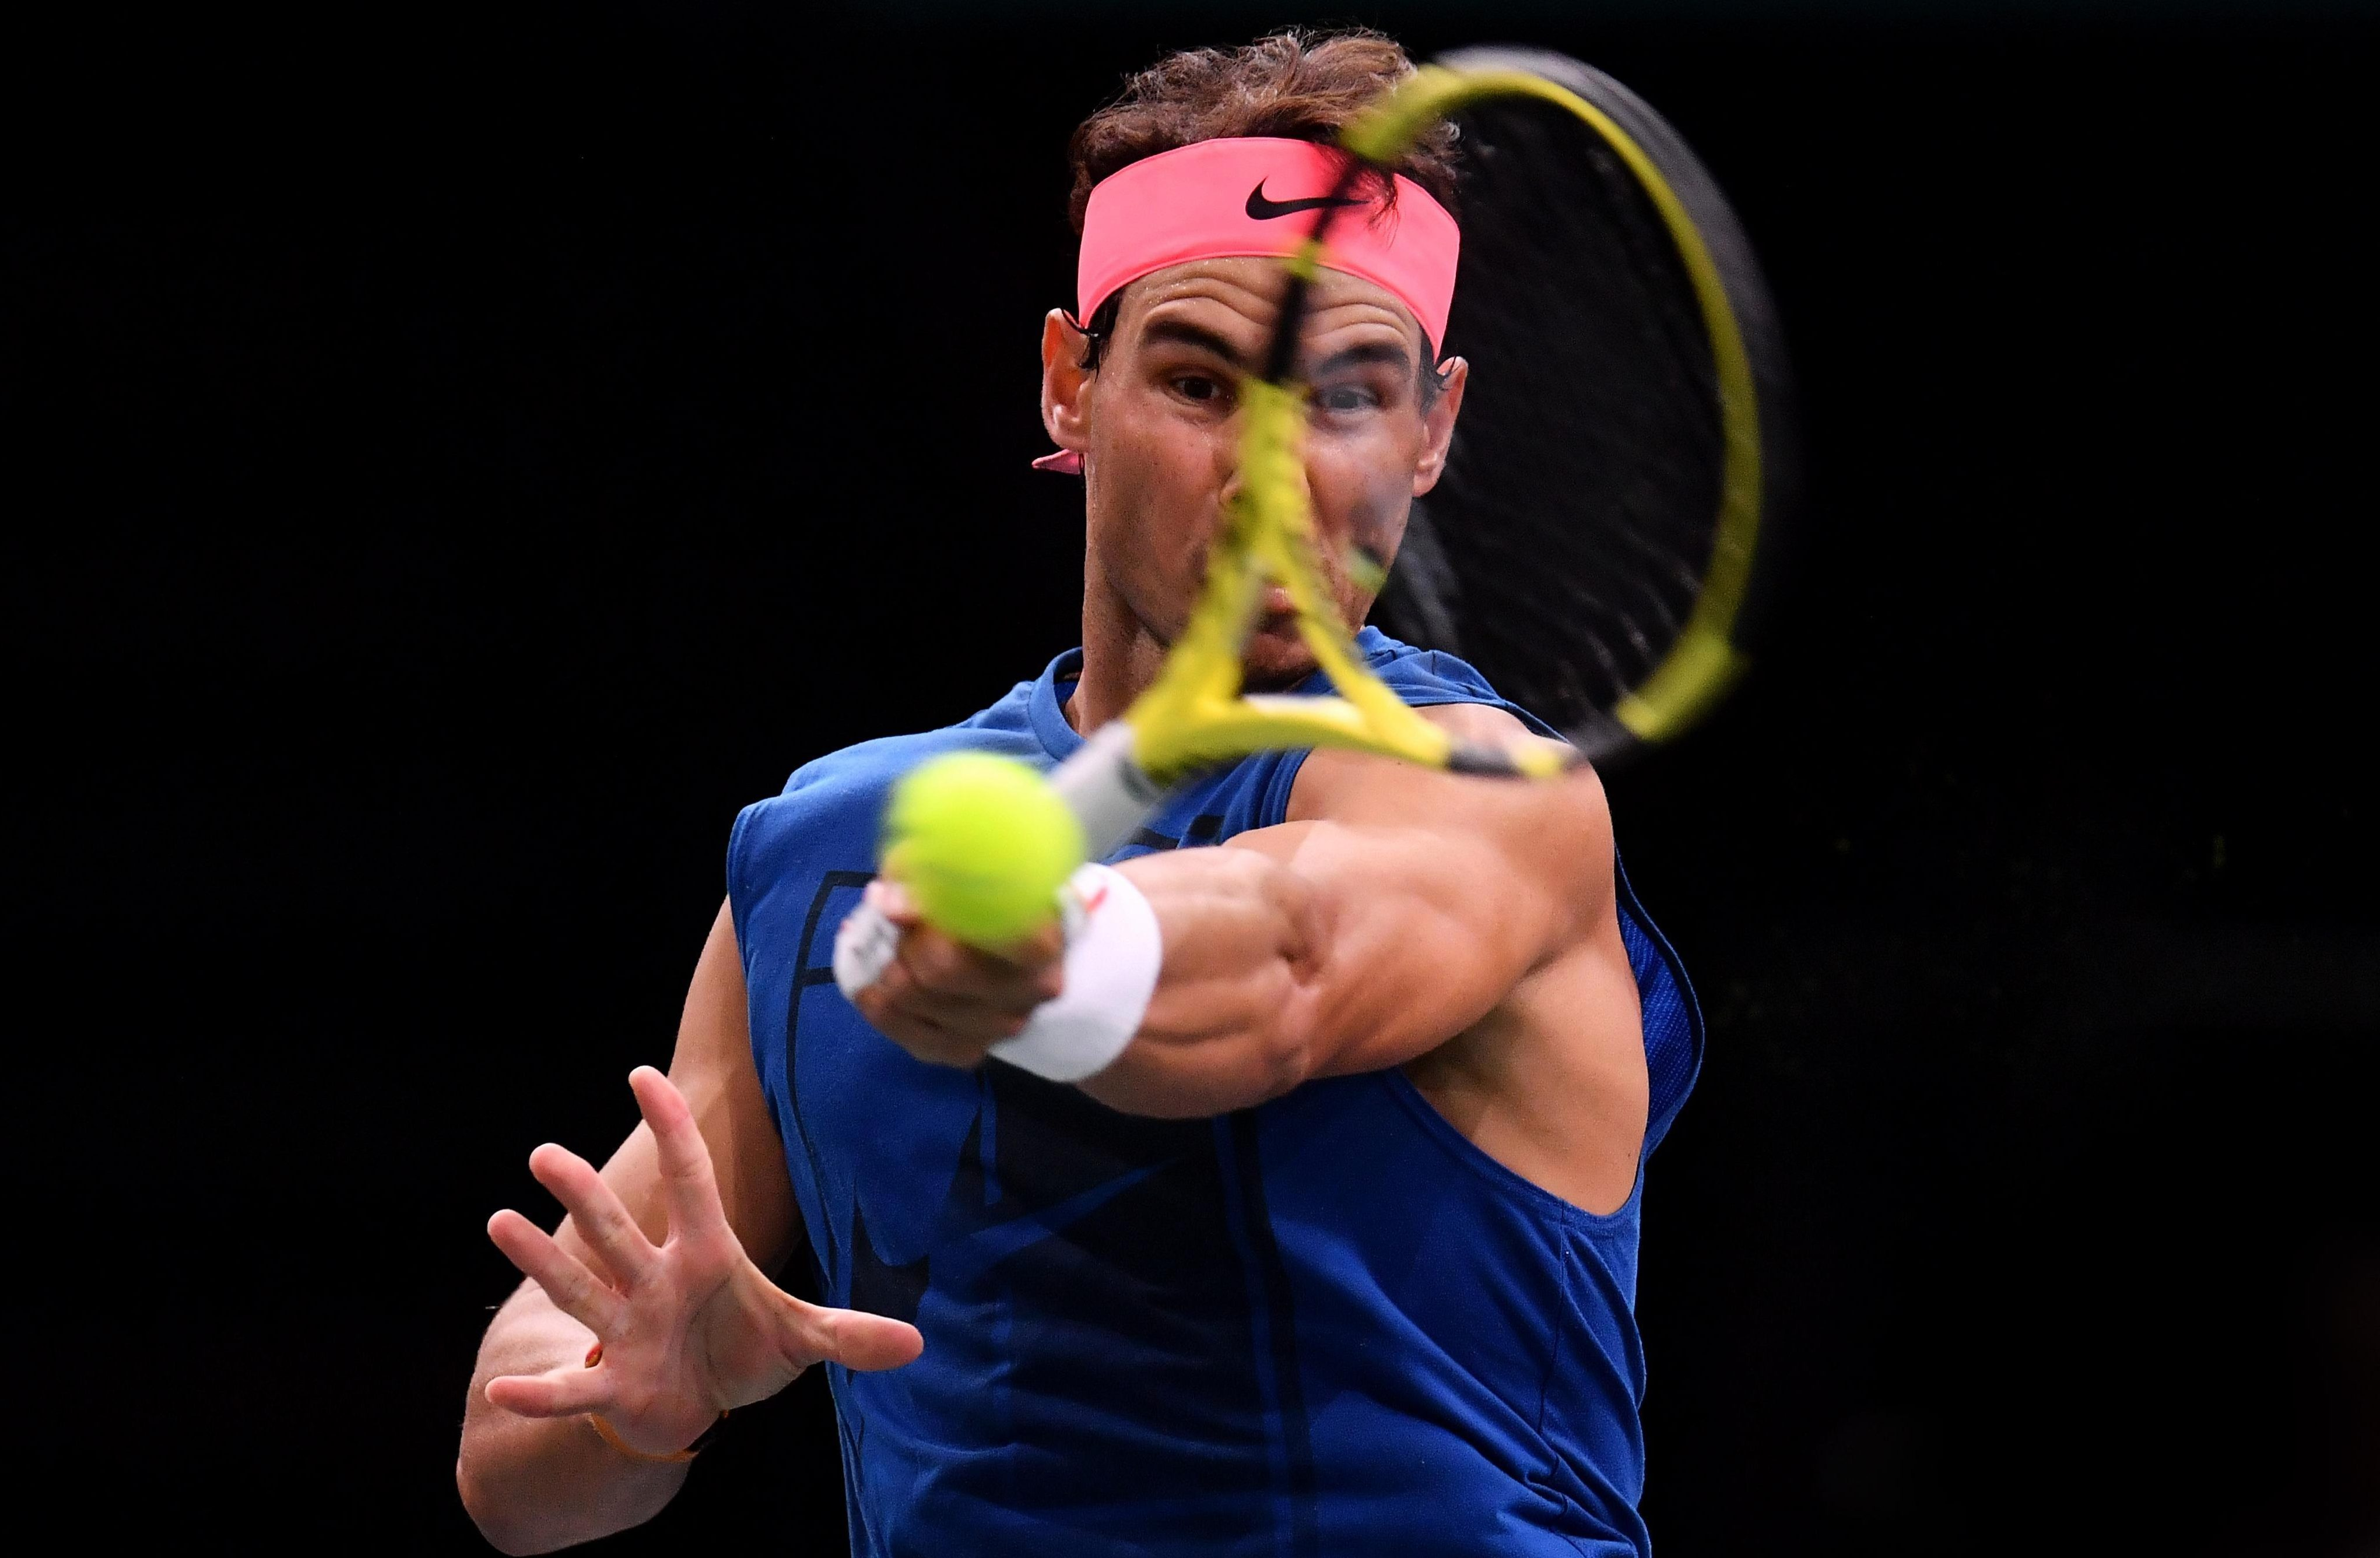 Nadal echoed the sentiments of his Serbian rival